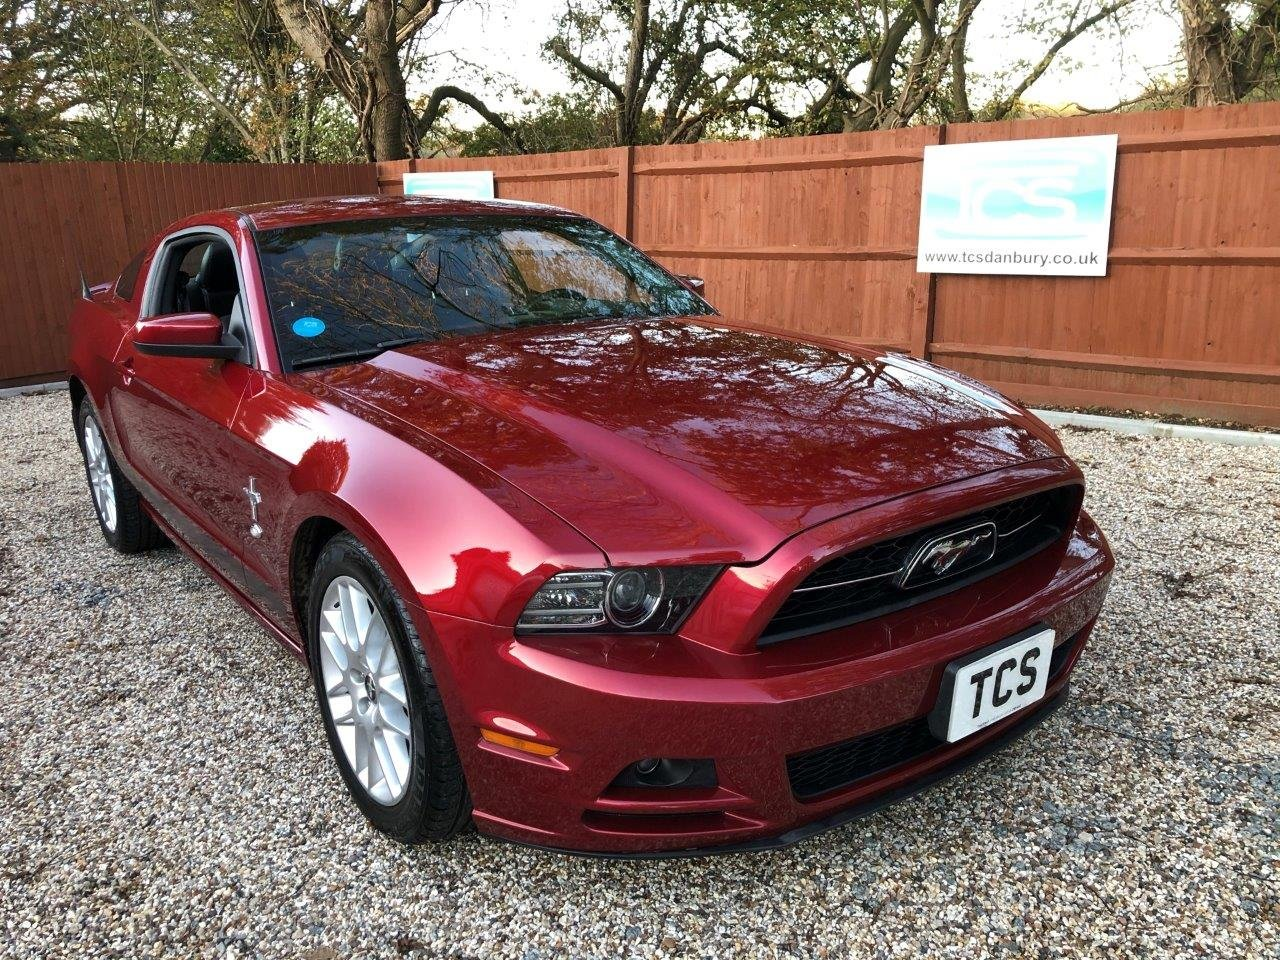 2014 15-Plate UK Registered Mustang Premium Fastback LHD Auto For Sale (picture 1 of 6)